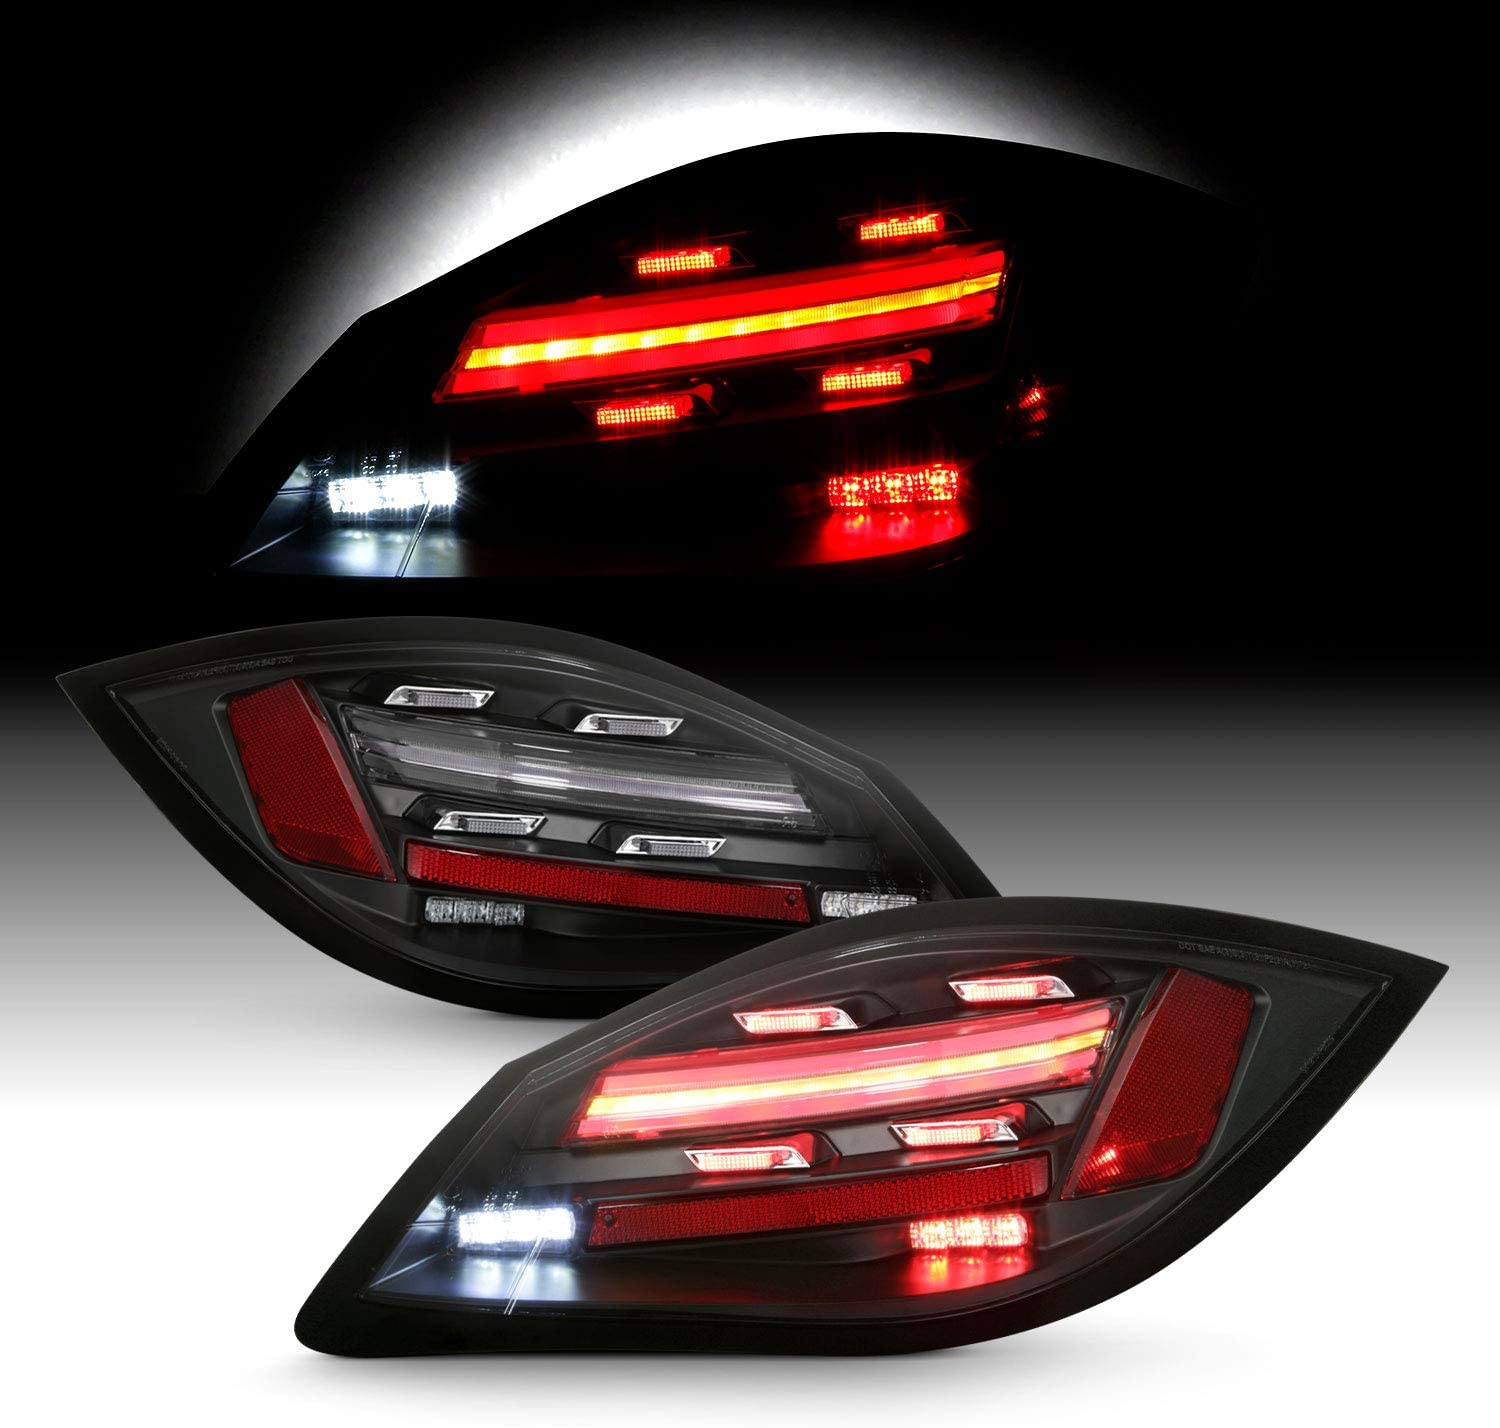 Fits 2009 2010 2011 2012 Boxster/Cayman [2nd Gen] 718 Style LED Sequentail Signal Black Tail Brake Lights